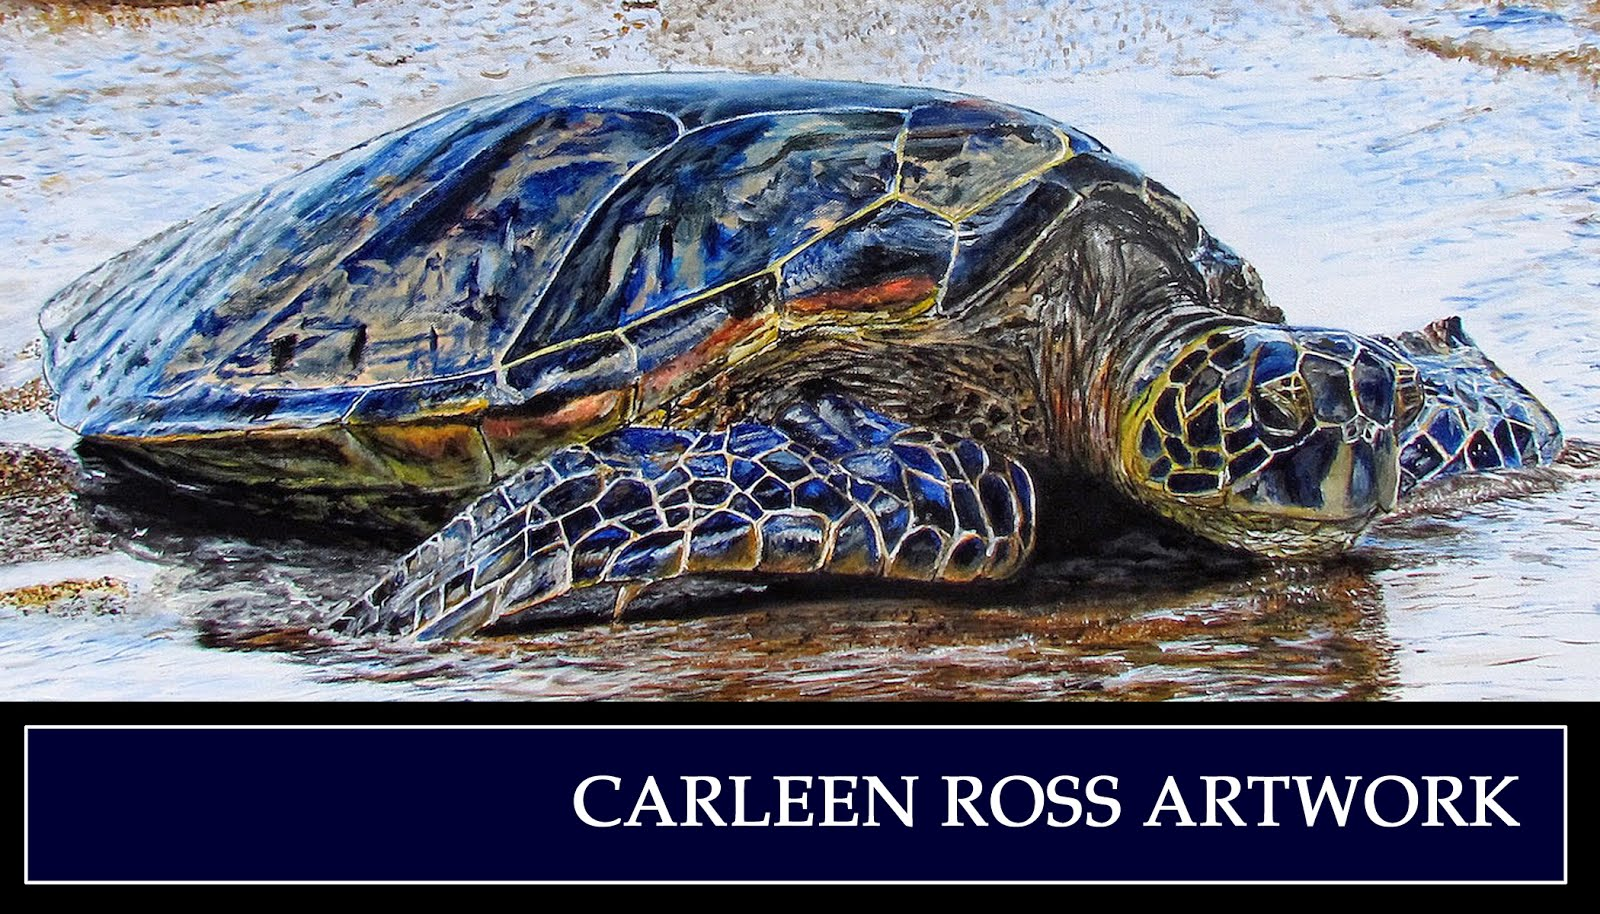 Carleen Ross Artwork